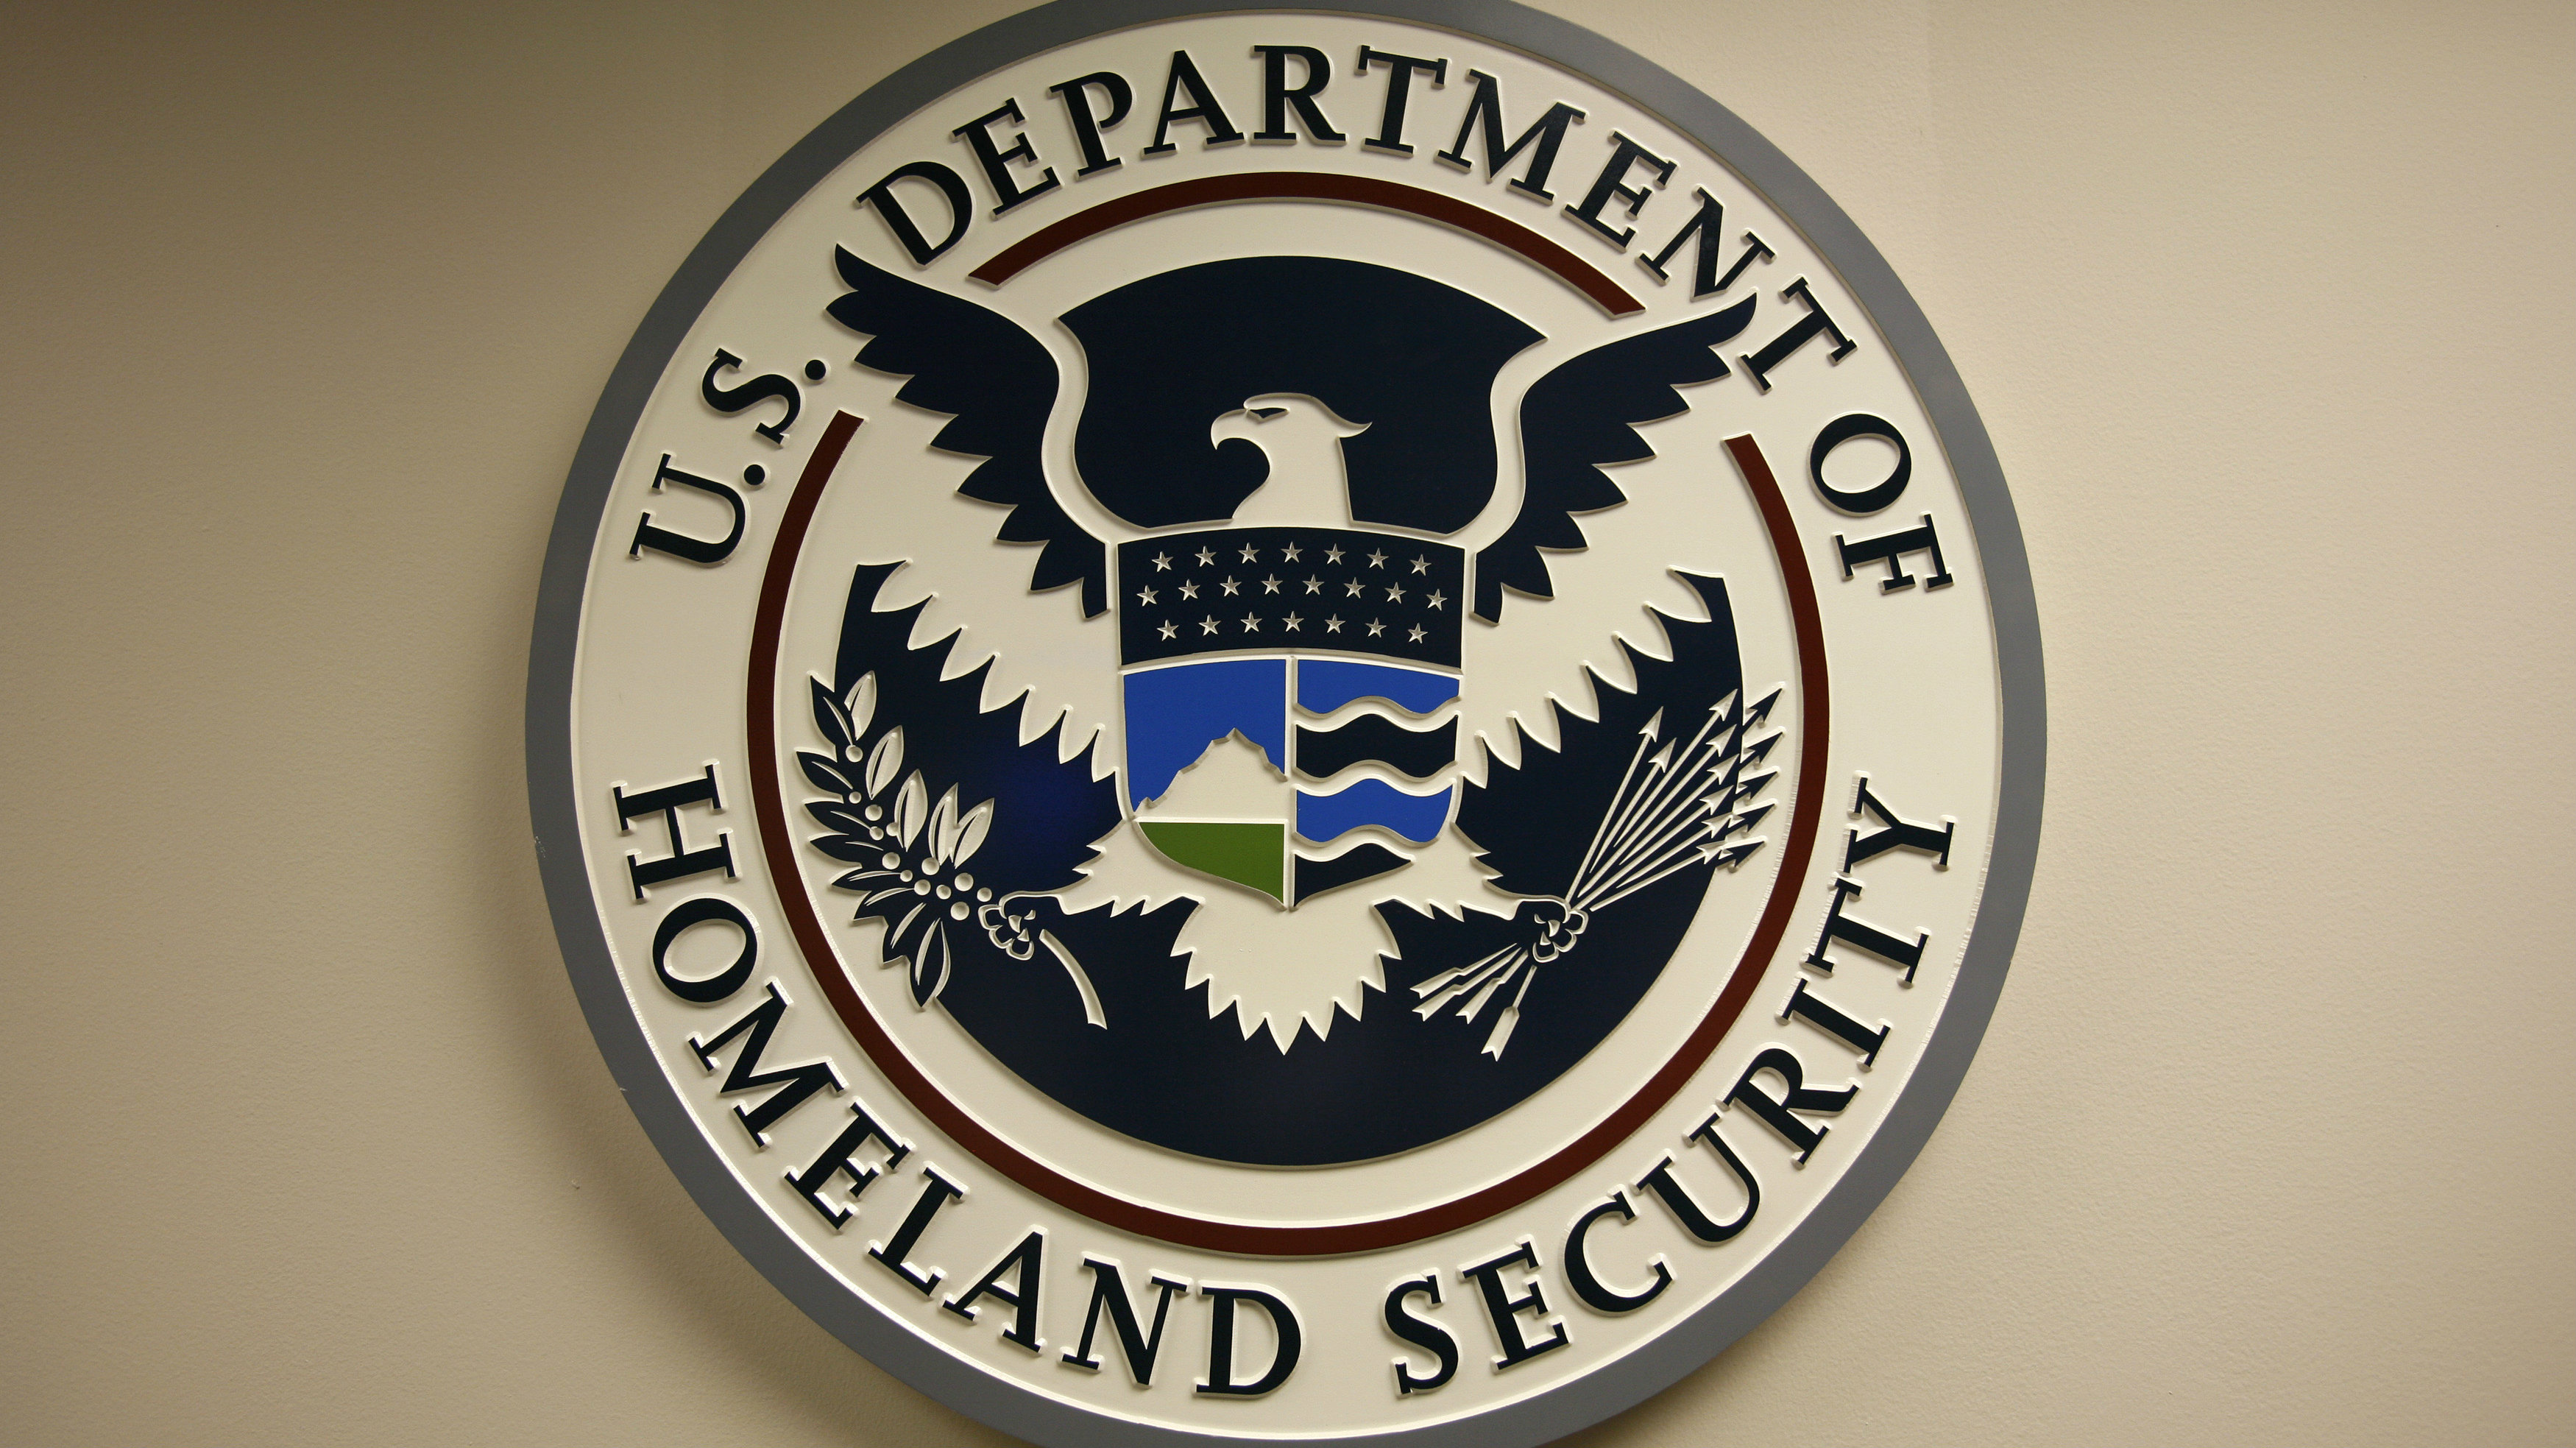 DHS DEPARTMENT HOMELAND SECURITY IPROOV BORDER SECURITY